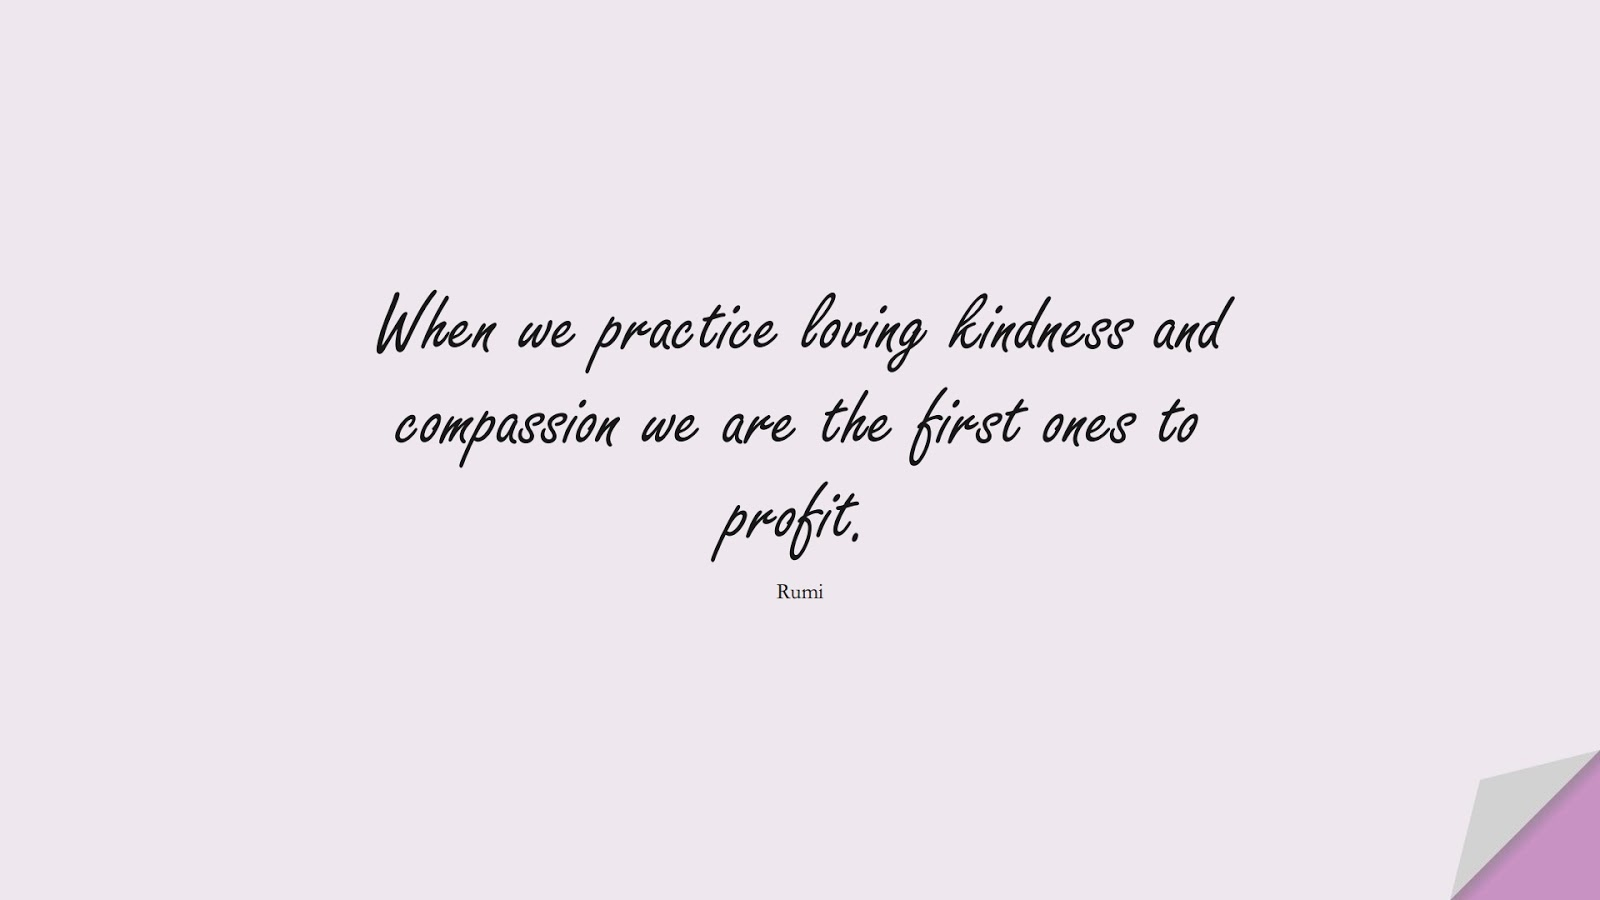 When we practice loving kindness and compassion we are the first ones to profit. (Rumi);  #RumiQuotes